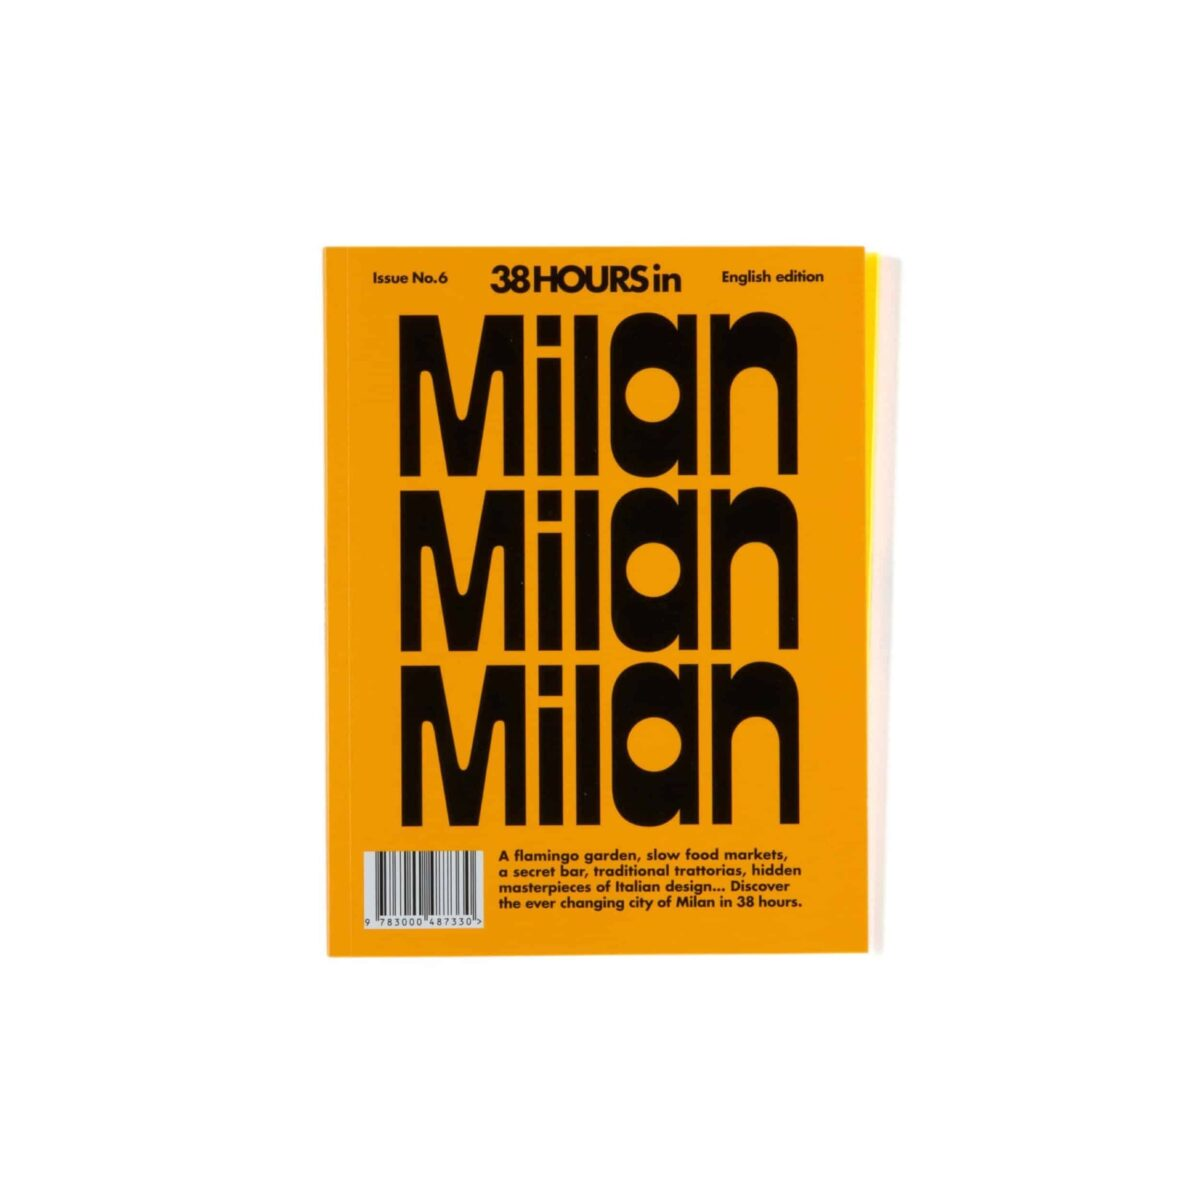 38-hour-travel-guide-issue-6-milan-001